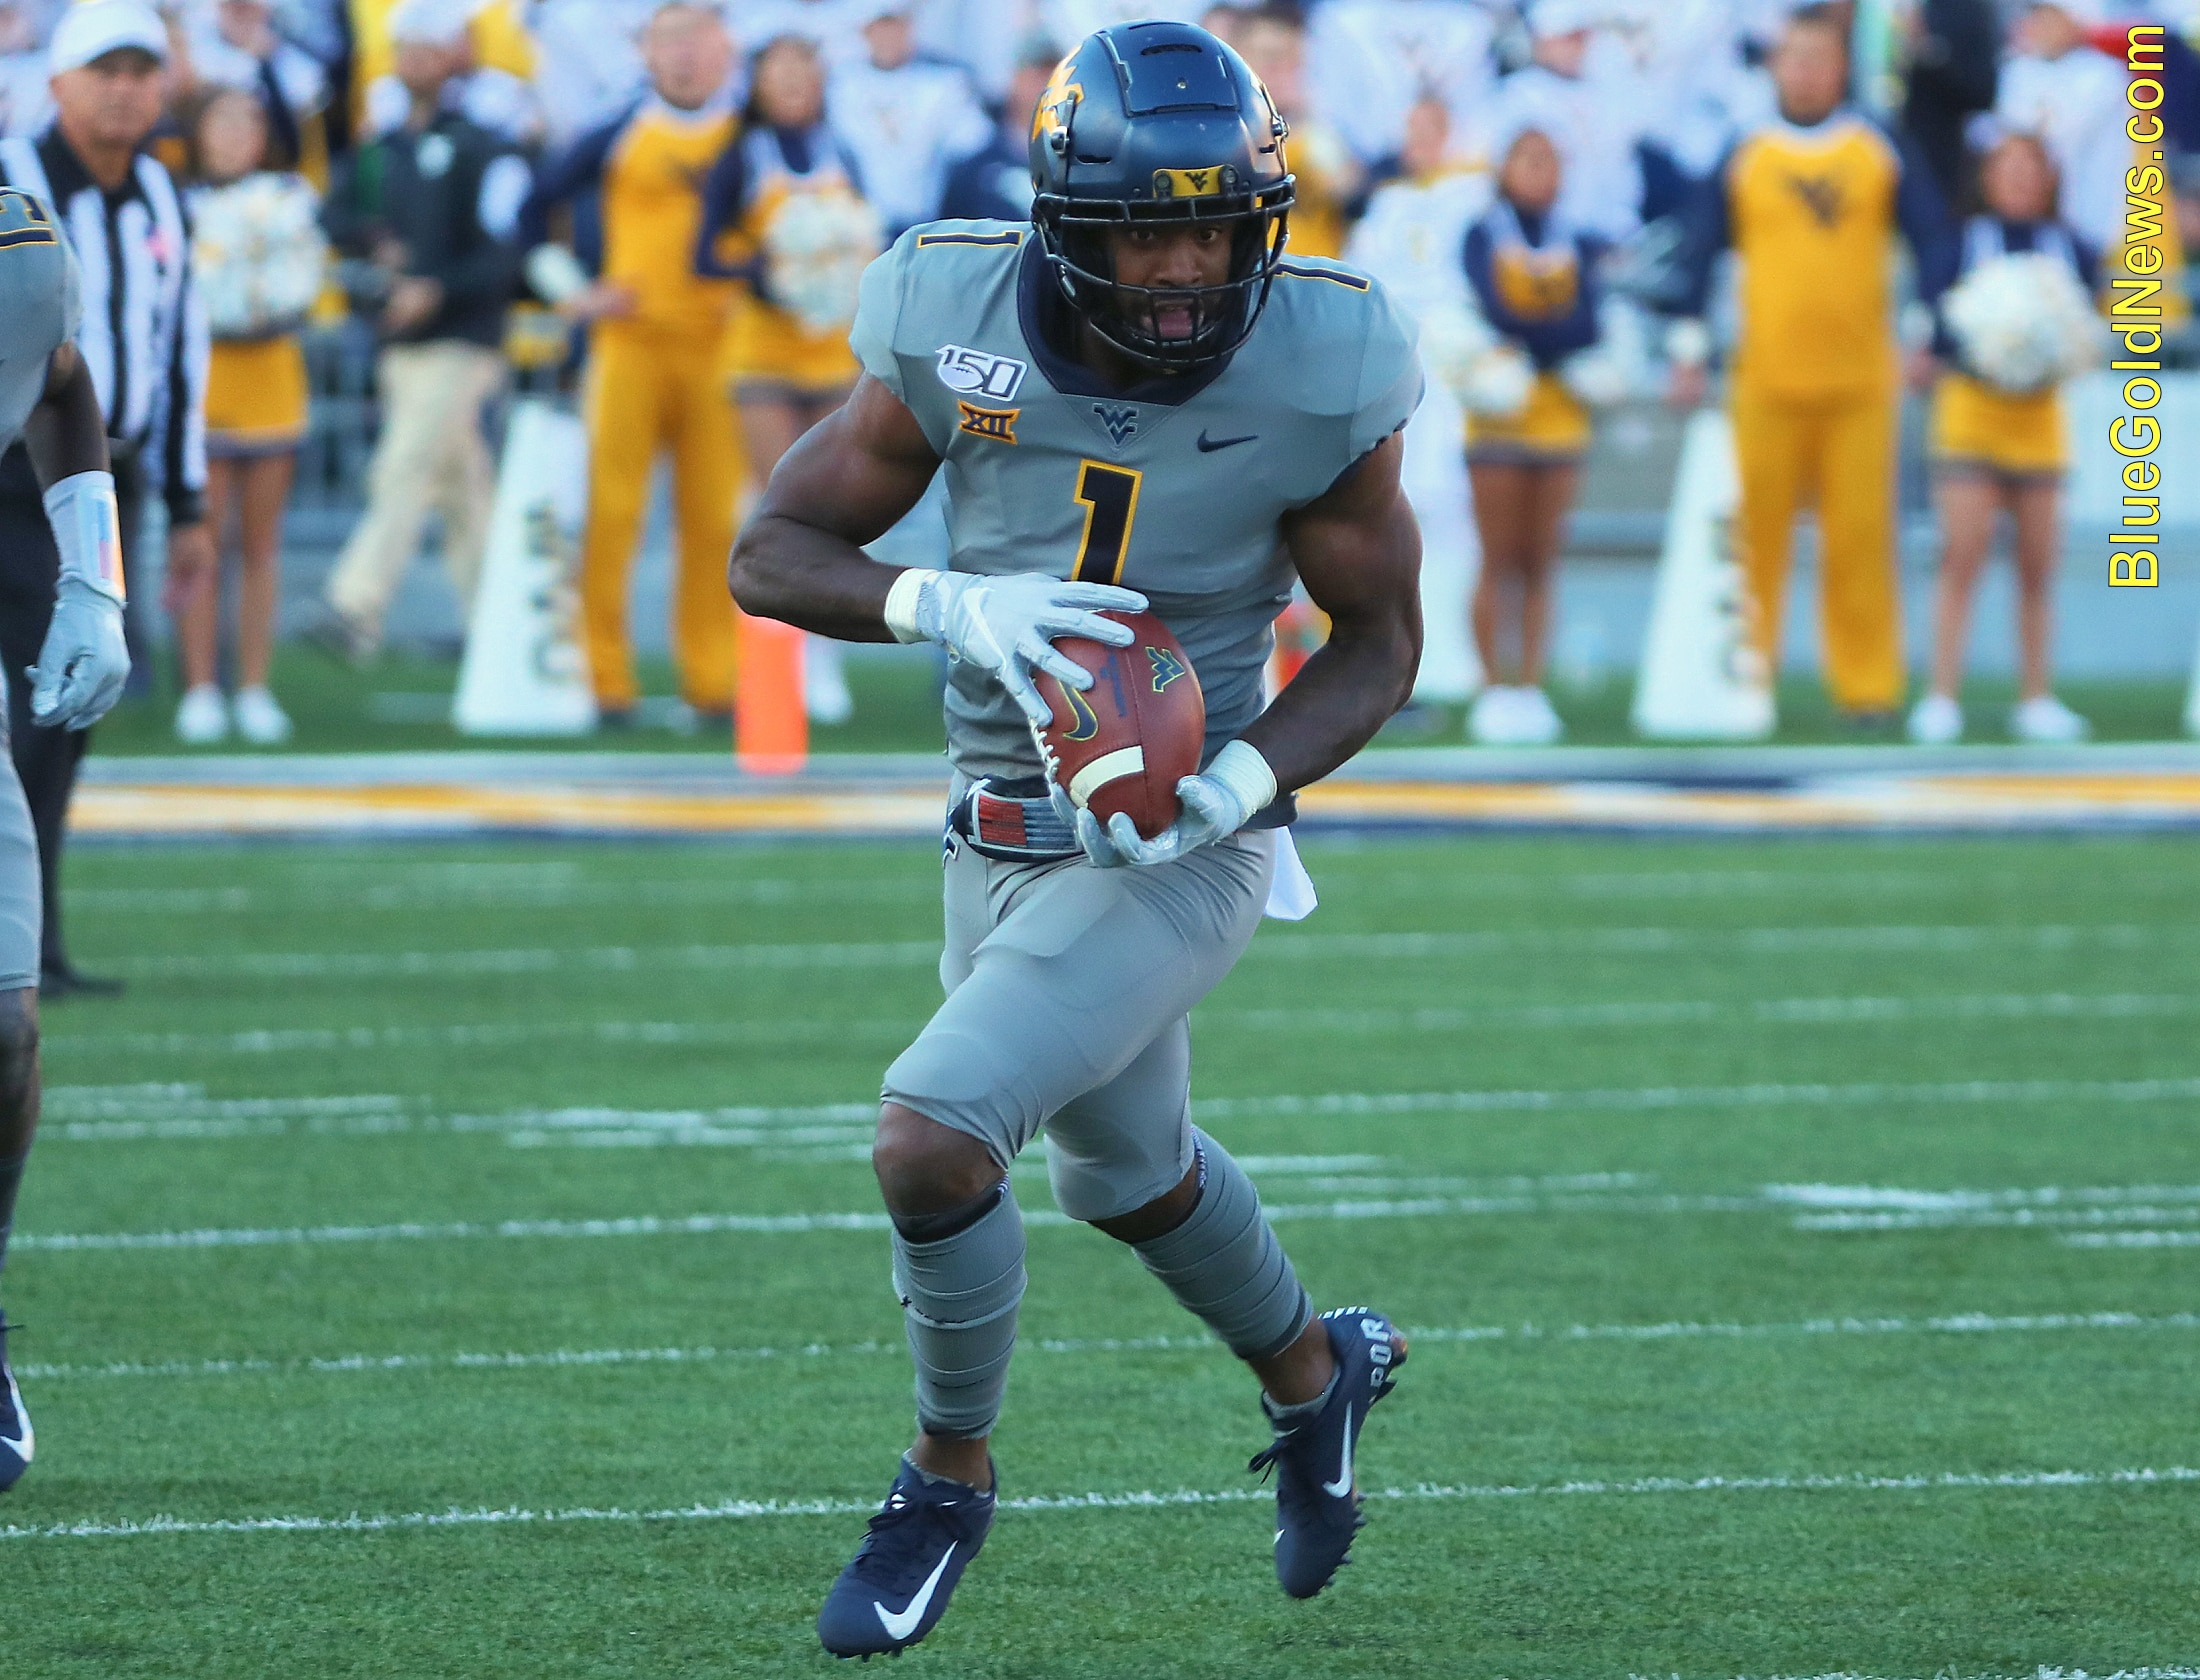 West Virginia receiver TJ Simmons gains yardage after a reception